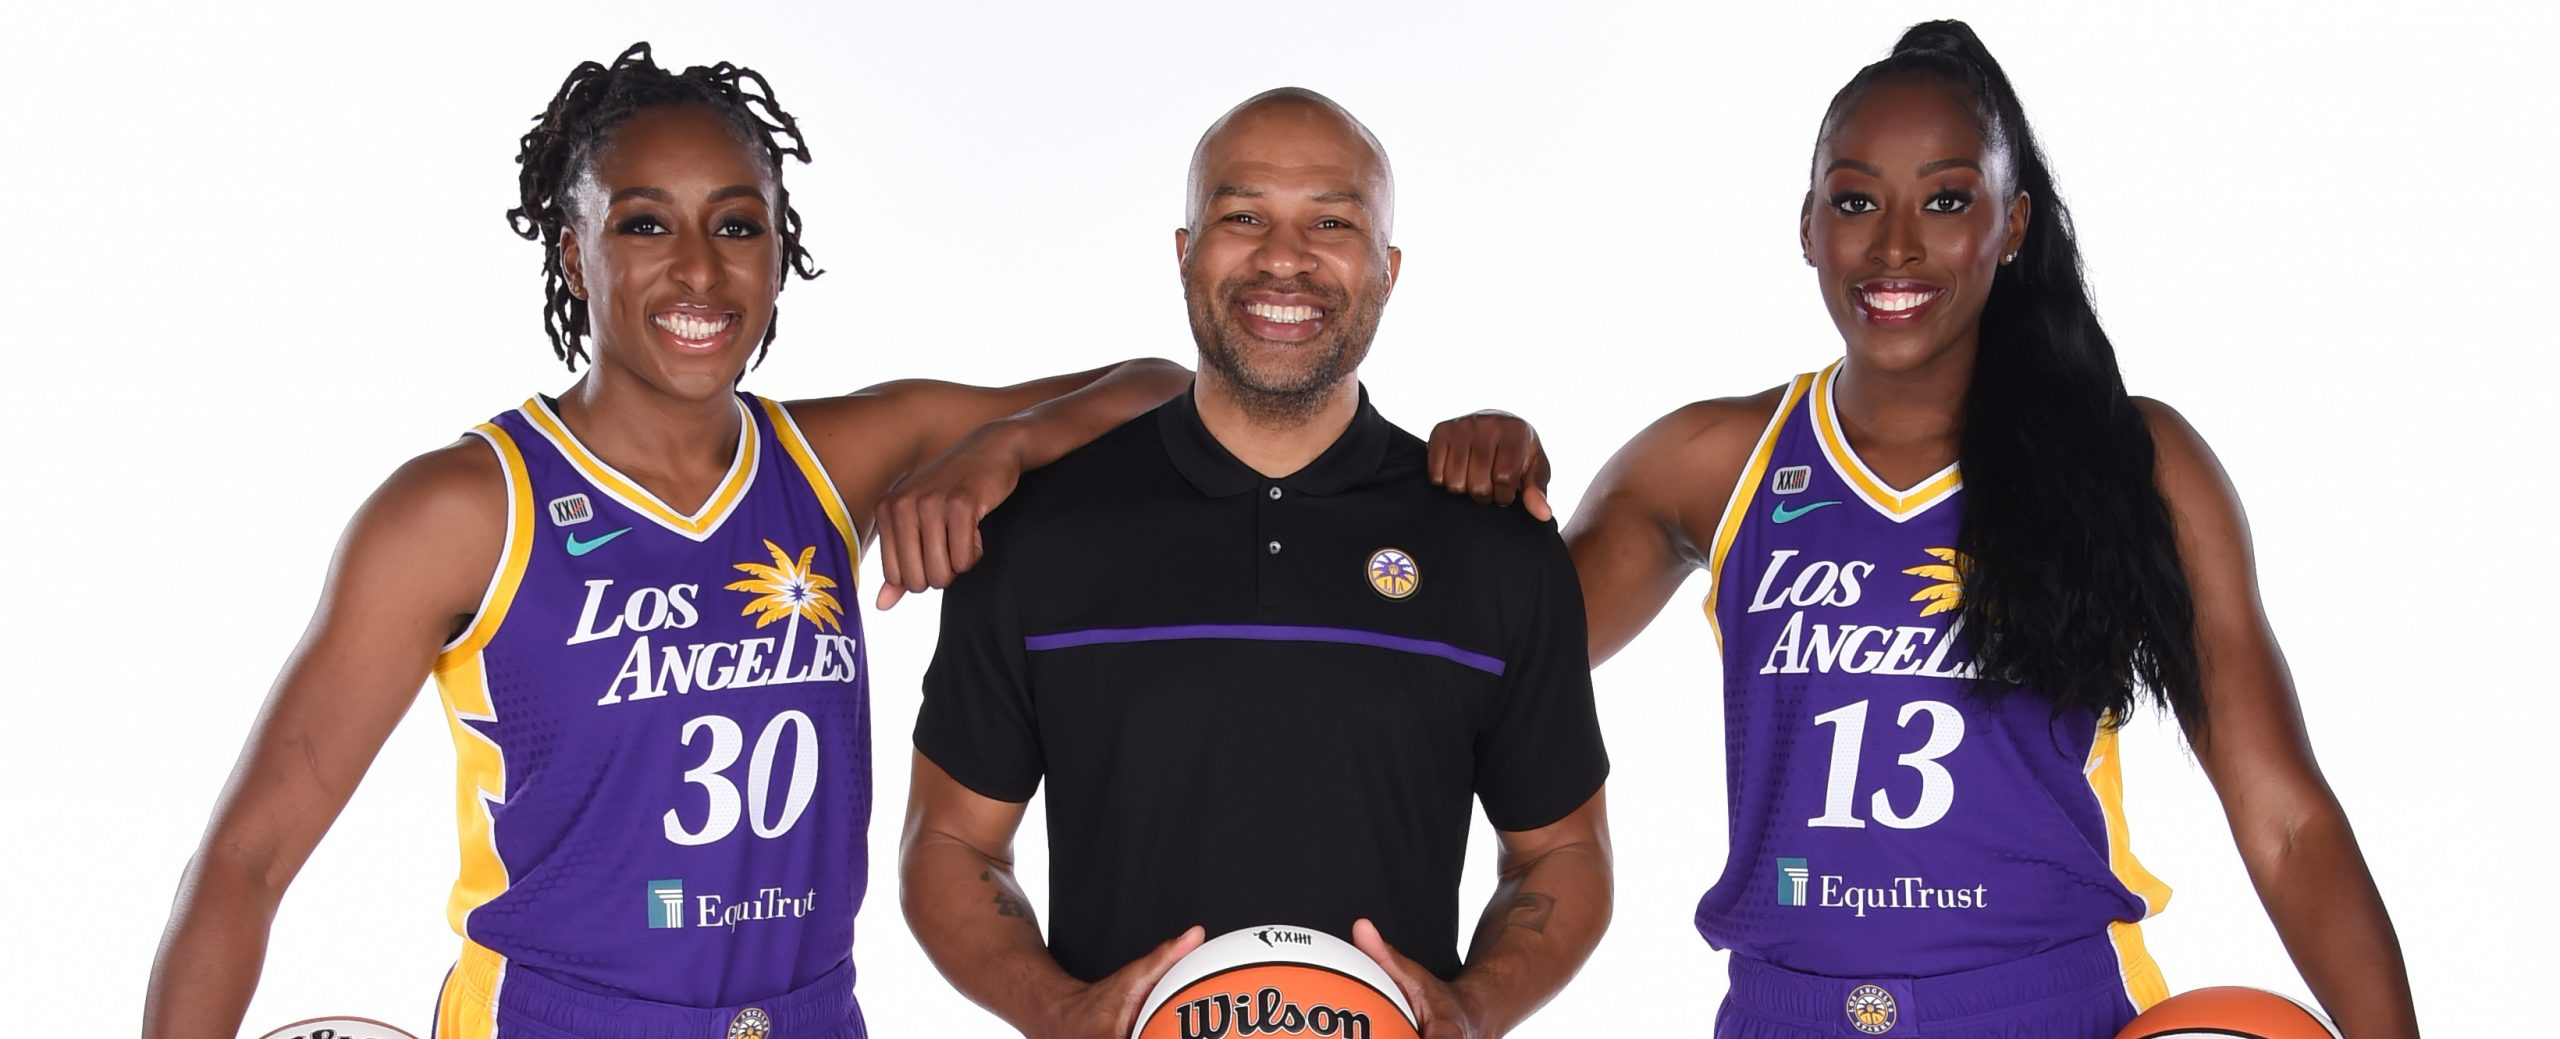 Fuel Your Life Announces International Partnership with the Los Angeles Sparks